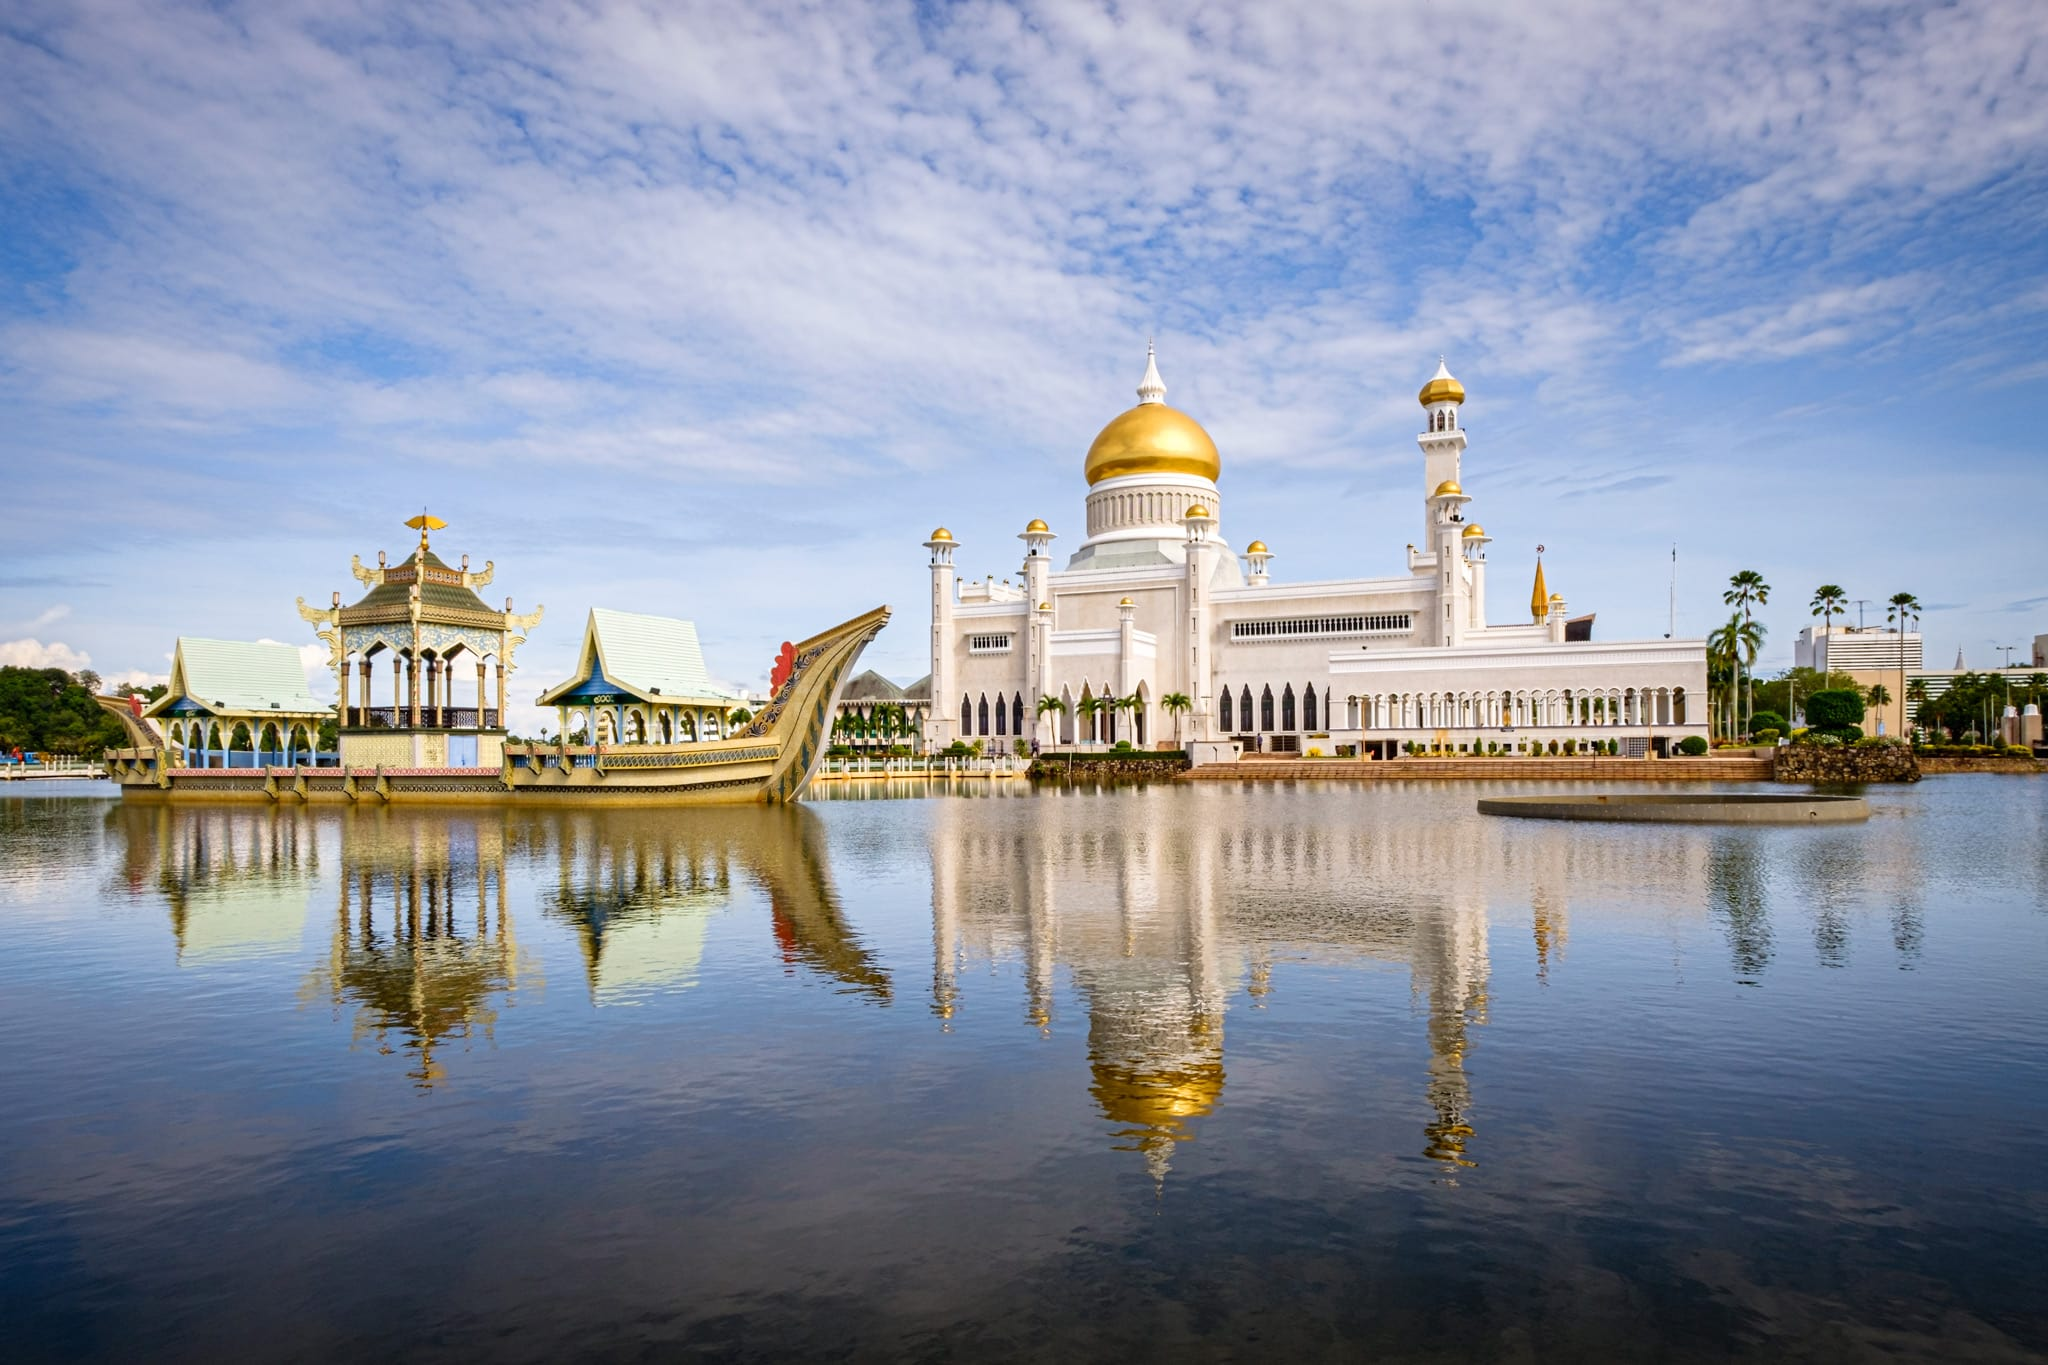 Morning shot of the Sultan Omar Ali Saifuddien Mosque, the royal Islamic mosque located in Bandar Seri Begawan, the capital of the Sultanate of Brunei.